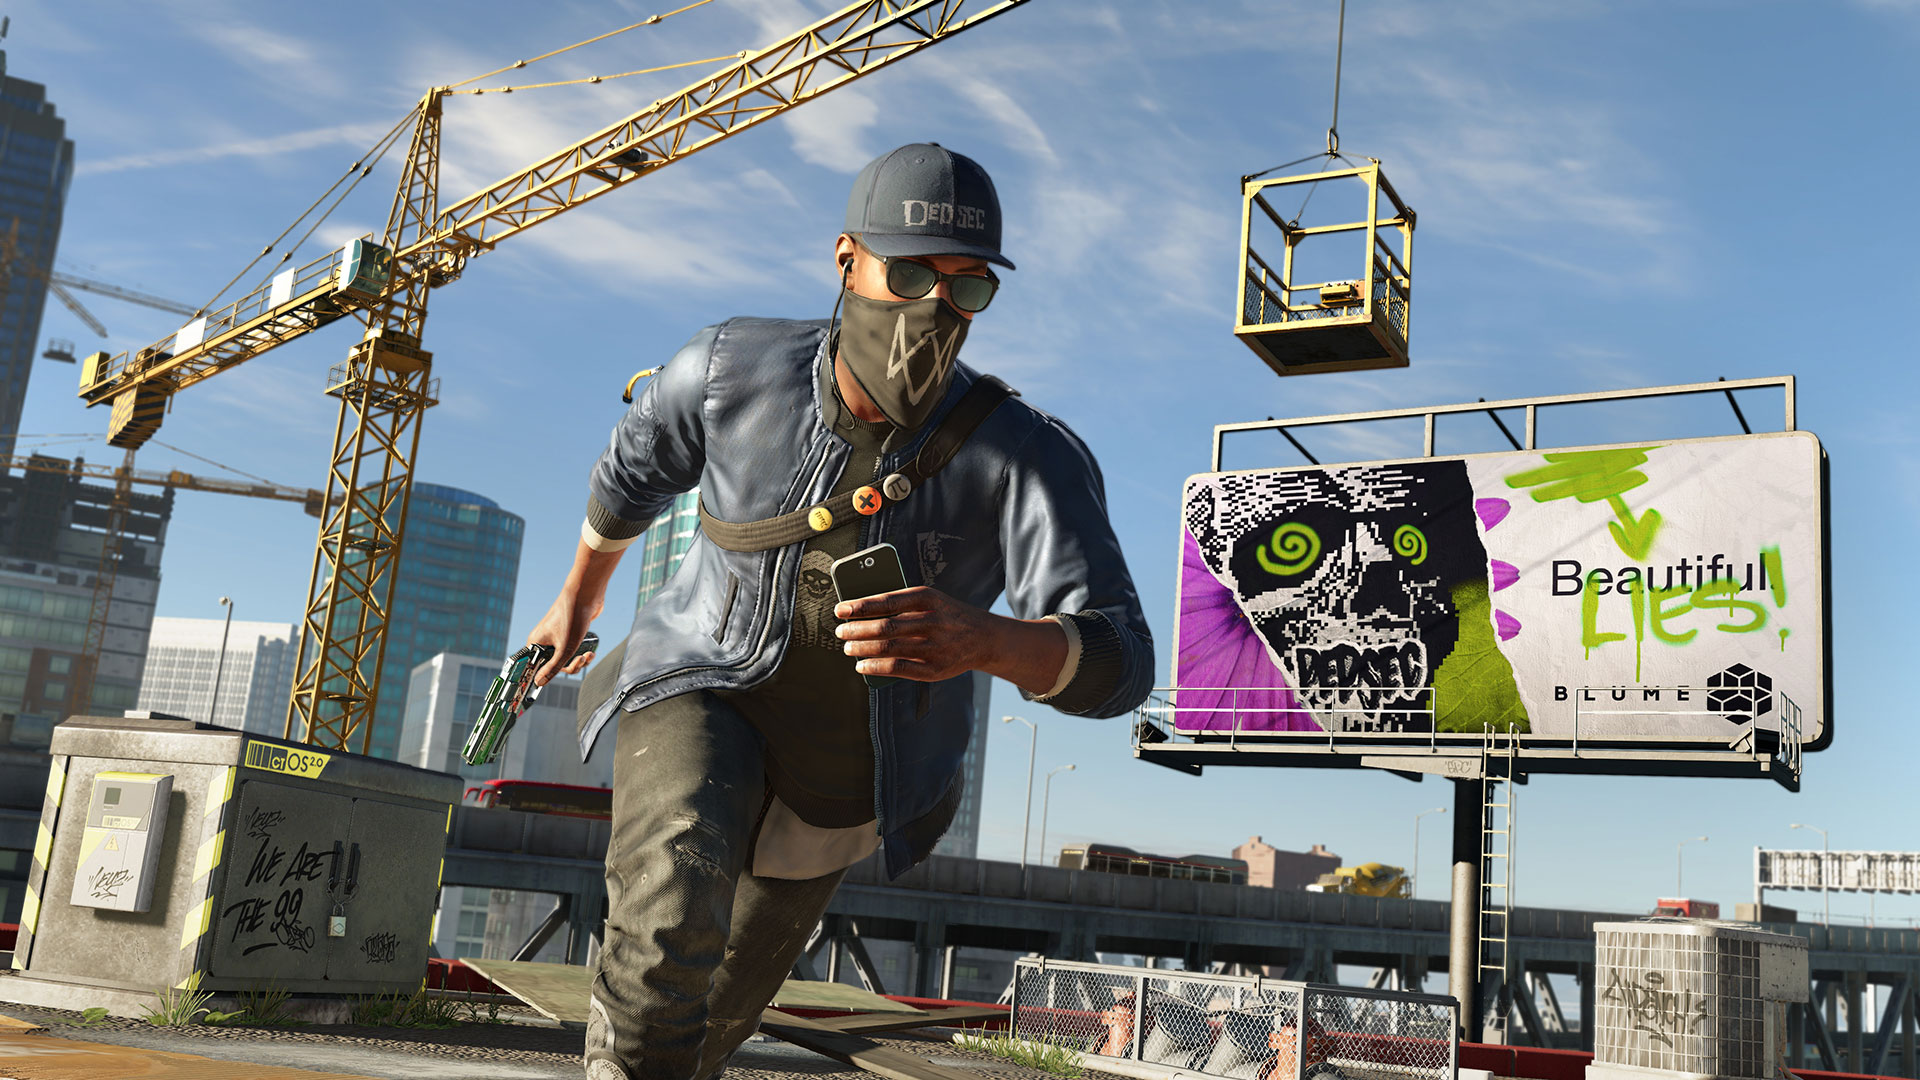 1920x1080 2016 Watch Dogs 2 Laptop Full Hd 1080p Hd 4k Wallpapers Images Backgrounds Photos And Pictures